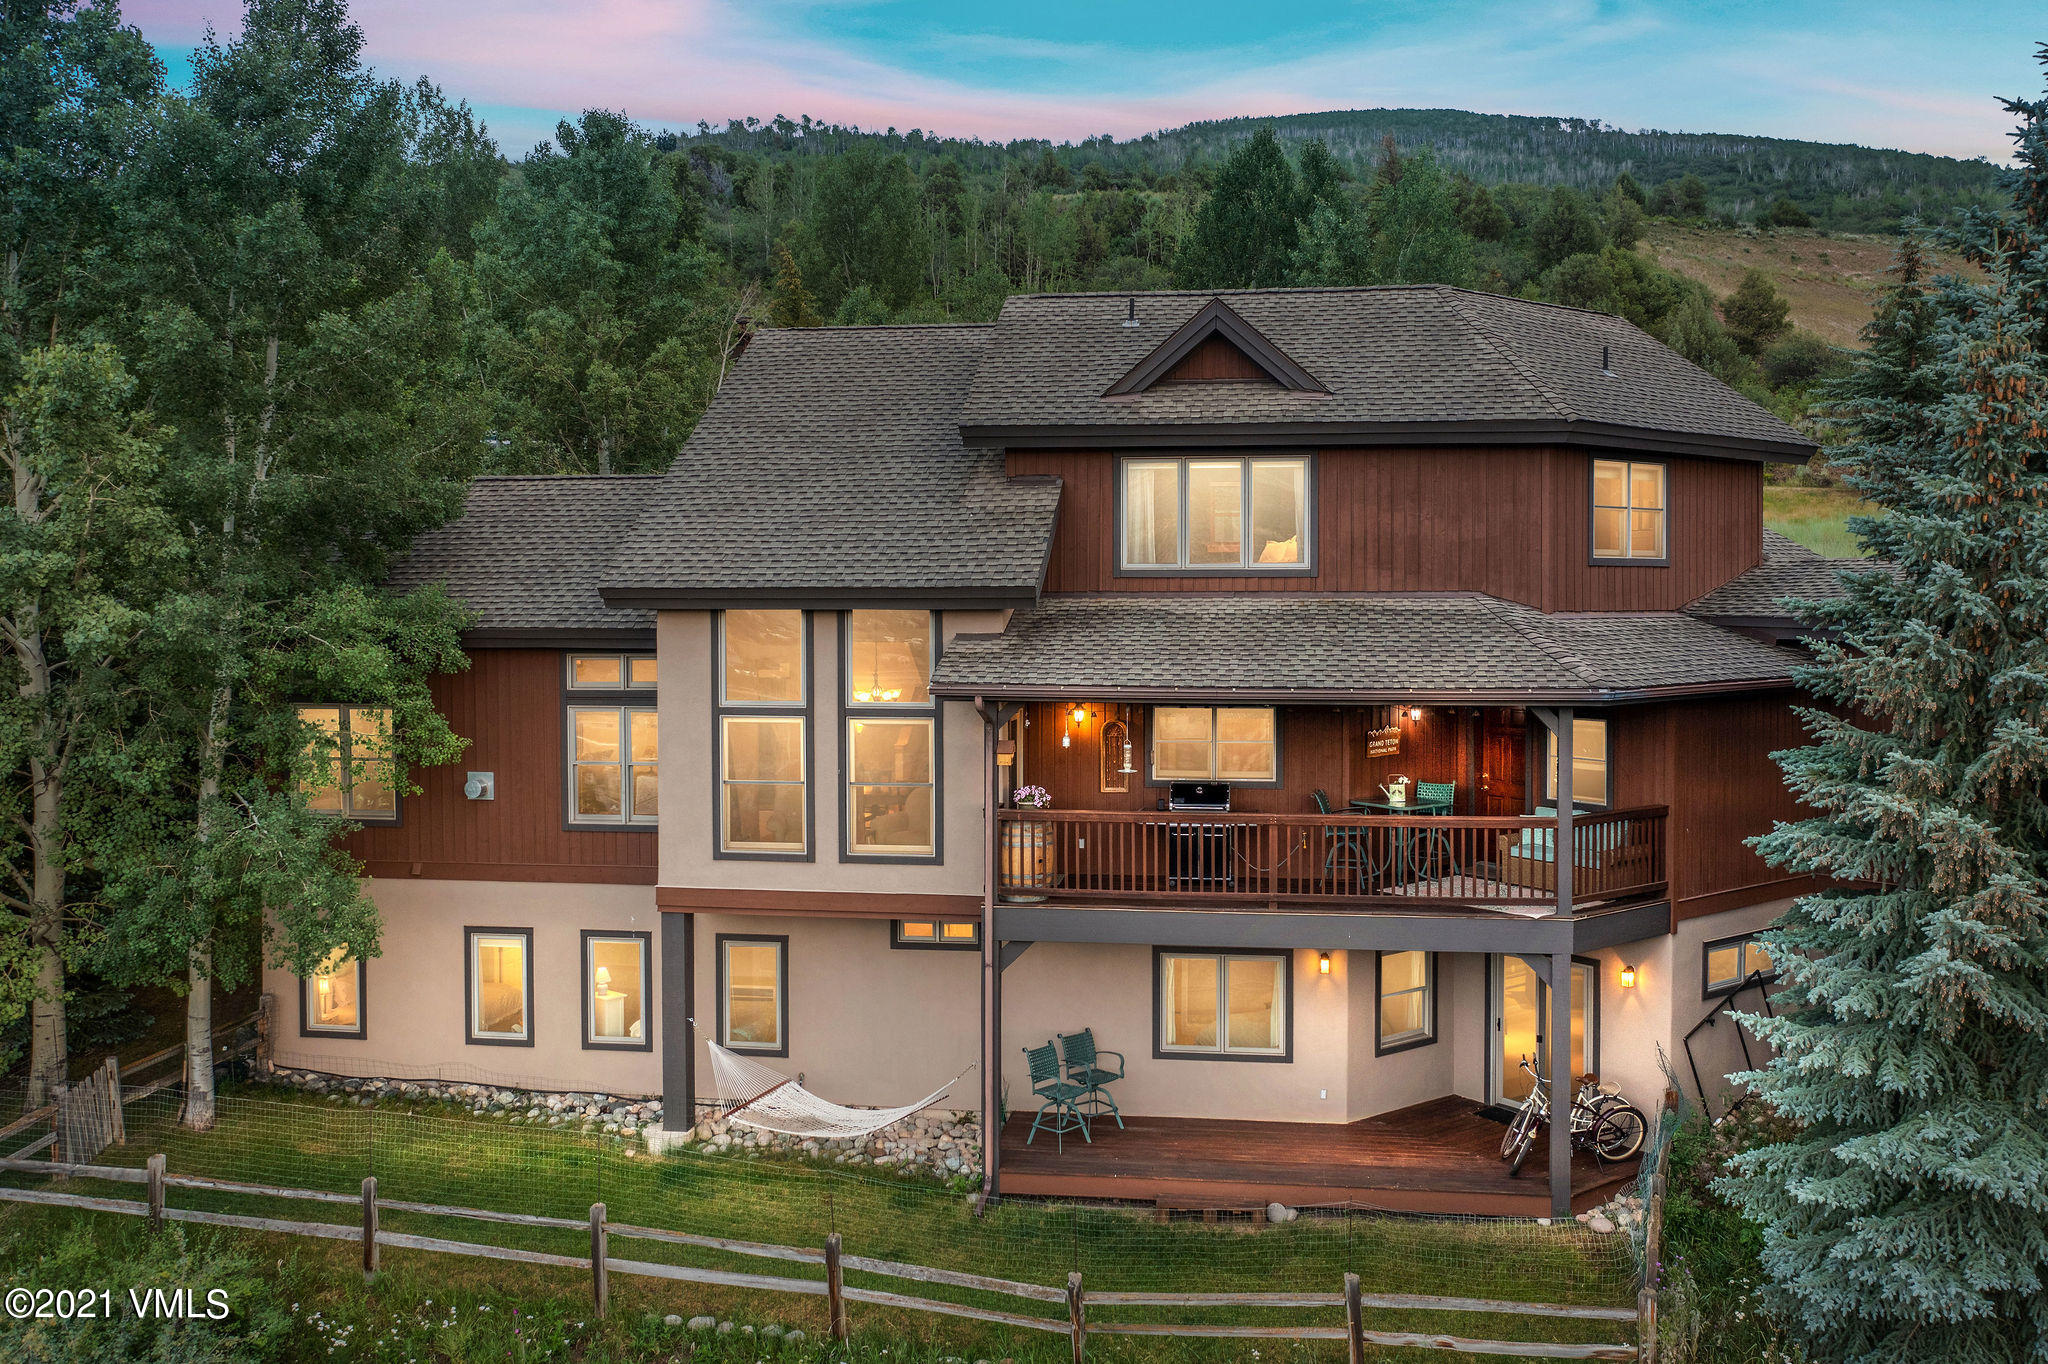 Located in one of the Vail Valley's most desirable communities, and now offered for the first time since new, this beautiful home exudes ''family'' at every turn.  Just steps through the front door you'll smile at the wonderful sense of arrival.  Awash with natural light provided by floor-to ceiling windows, the main level features newly refinished hardwood floors and a wonderful sense of space accentuated by the cathedral ceilings.  All of these complement an open, flowing floorplan which provides the perfect setting for gatherings of your family and friends, topped off by outstanding views which sweep as far as the eye can see from east to west.The main floor includes living/dining/kitchen areas which flow seamlessly from one to the other.  Outdoor living areas abound on this floor, including a spacious private patio area which will become your favorite for enjoying morning coffee, dinners al fresco, and apres ski hot tub sessions.  You'll also treasure the covered deck, located just off the kitchen, featuring big views of the valley and mountains beyond.  Wrapping up the main floor is a generous, two car garage which includes room for all of your mountain toys.Upstairs is the expansive primary suite, with walk-in closet and adjoining bonus room that's perfect as an office, nursery or reading room.  You'll treasure the big views from the moment you open your eyes each morning.  A jetted tub and shower round out the suite, one which will become your private respite at the end of each day.  The first level of the home includes three bedrooms, two baths, and a fun, oversized rec room.  A walk out from the rec room leads to the fenced back yard area, perfectly sized for your family pup.  You'll quickly come to appreciate the convenience of calling Homestead ''home,'' with the extensive shopping, dining, some of the Valley's best schools and the Gates of Beaver Creek just minutes from your door.